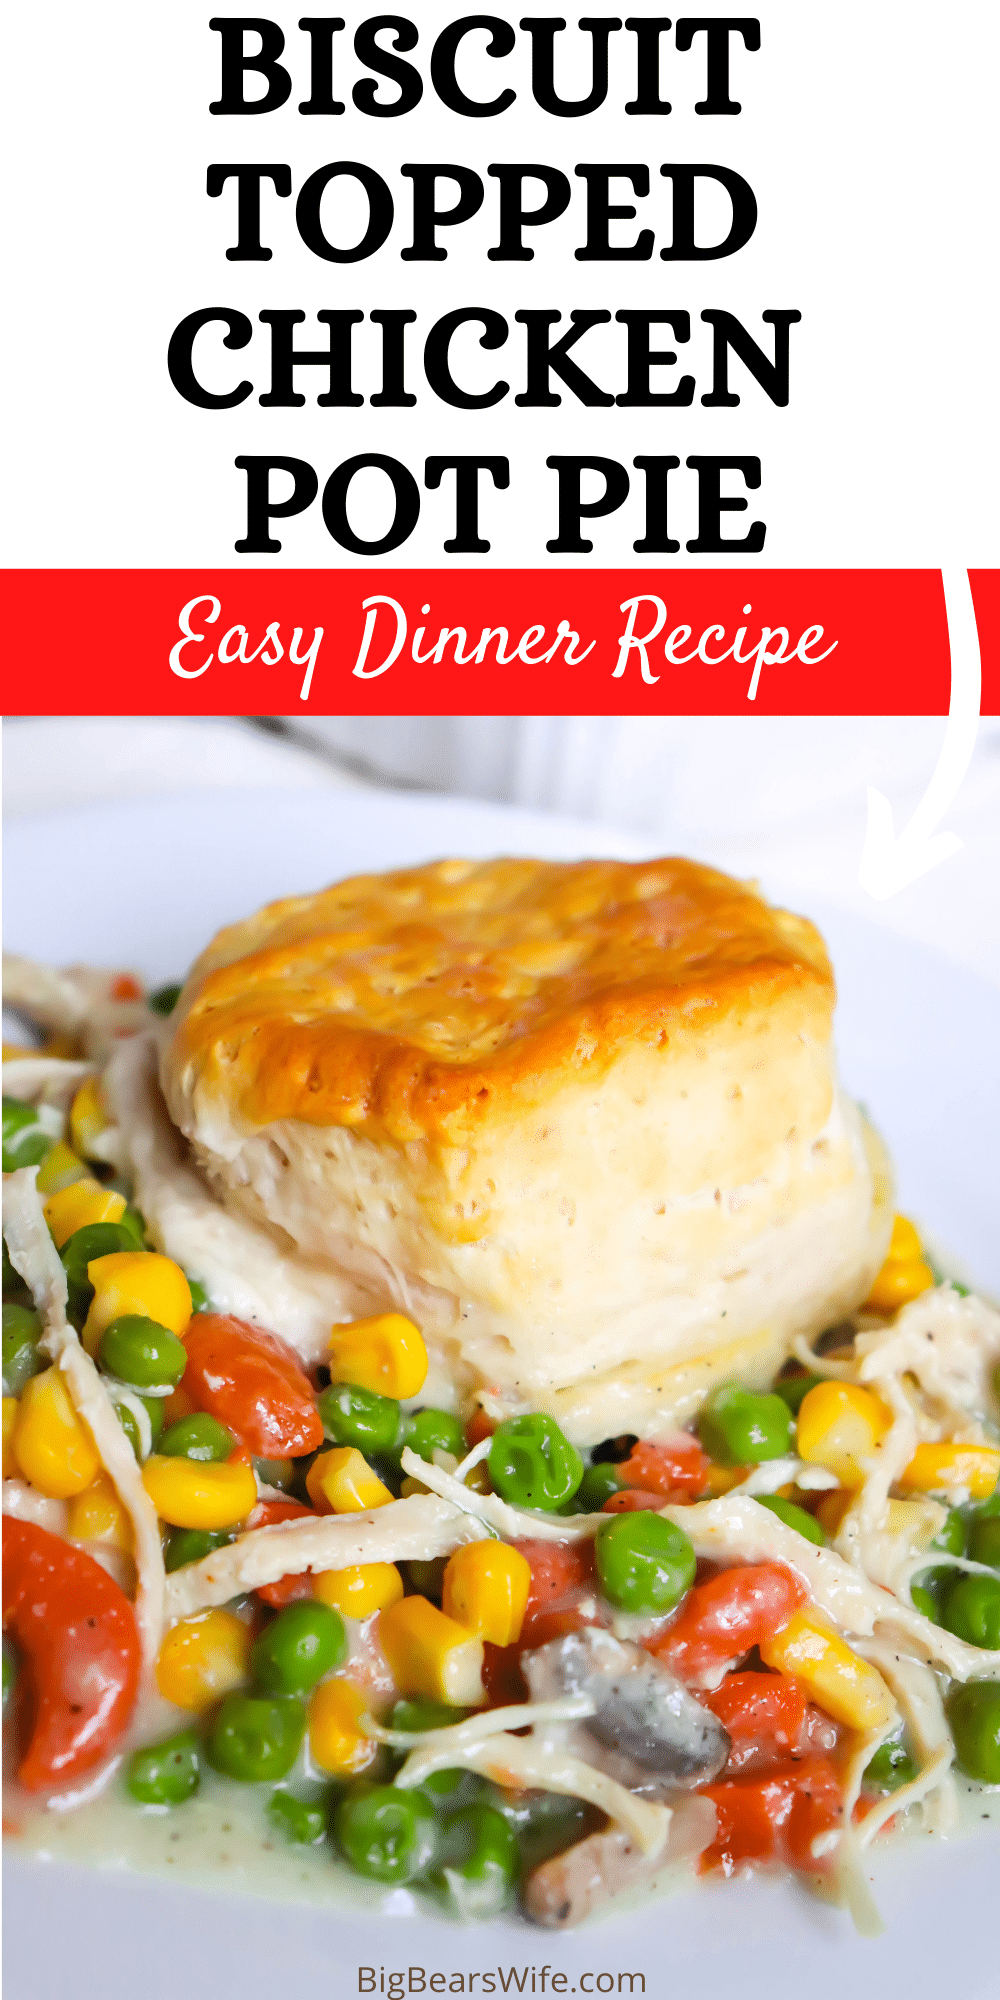 Biscuit Topped Chicken Pot Pie - a homemade chicken pot pie filling of chicken, carrots, peas and mushrooms topped with buttery golden baked biscuits!  via @bigbearswife